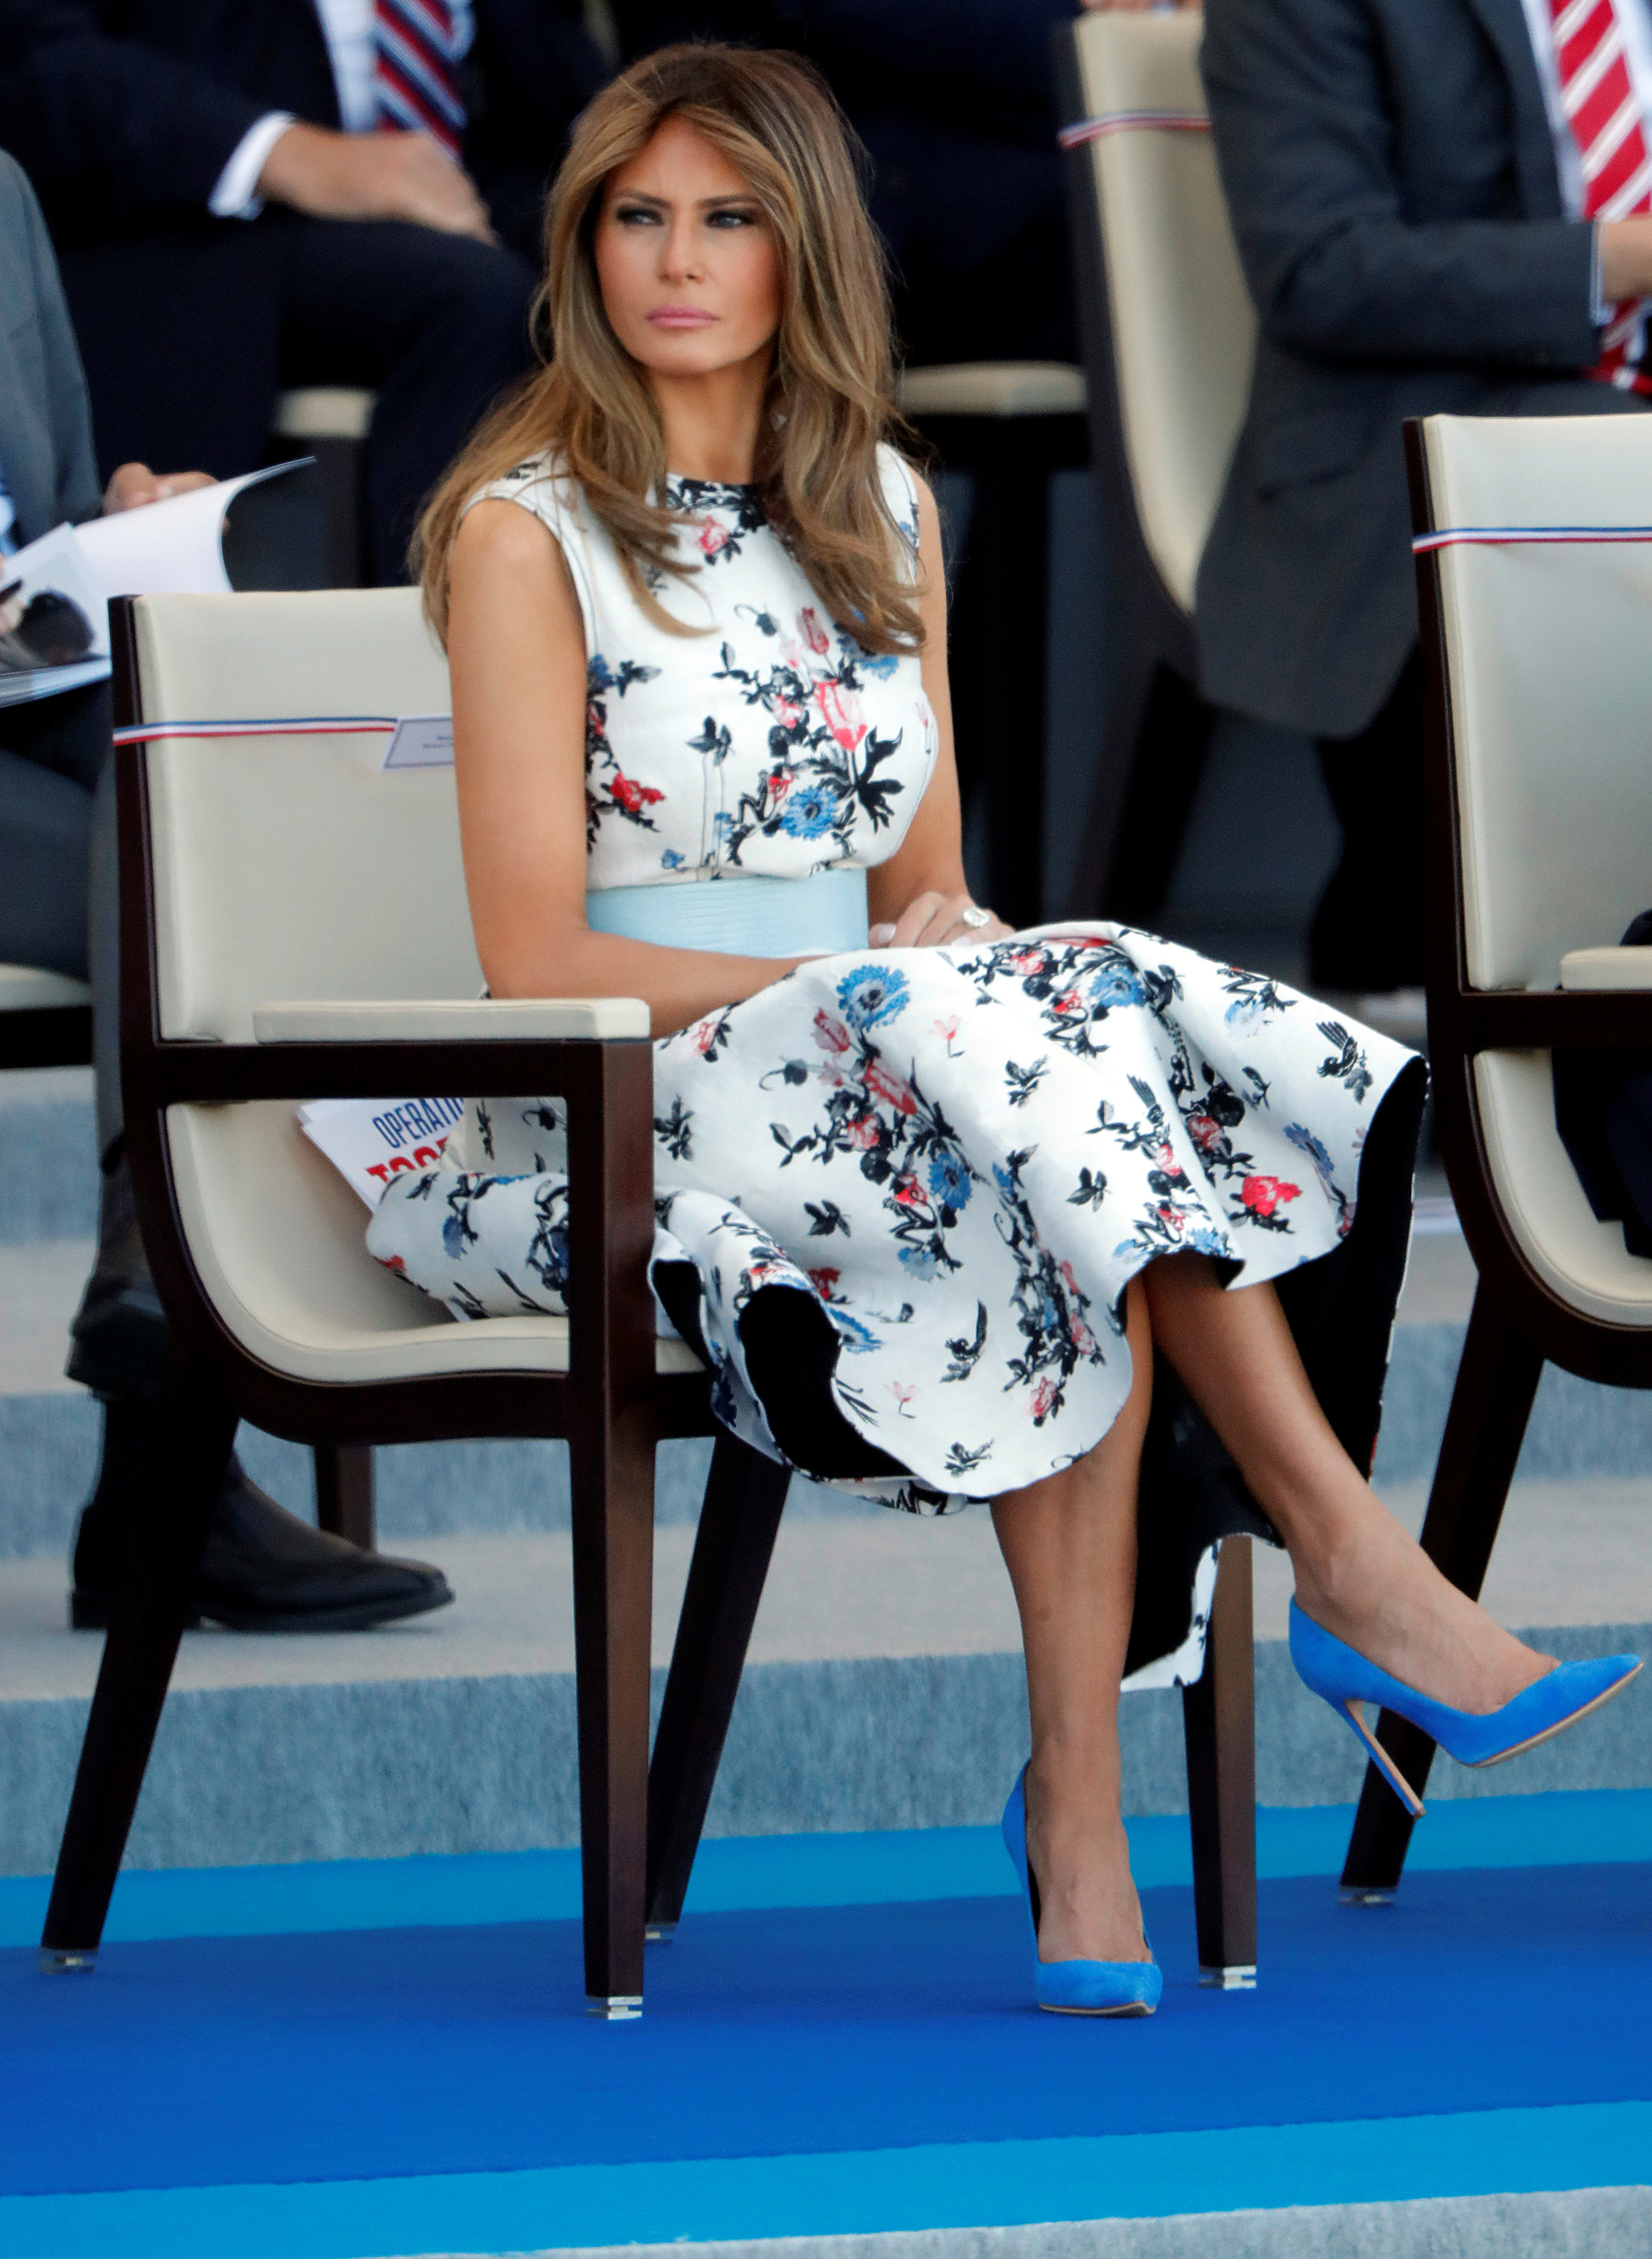 U.S. First Lady Melania Trump attends the traditional Bastille day military parade on the Champs-Elysees in Paris, France, July 14, 2017. REUTERS/Charles Platiau